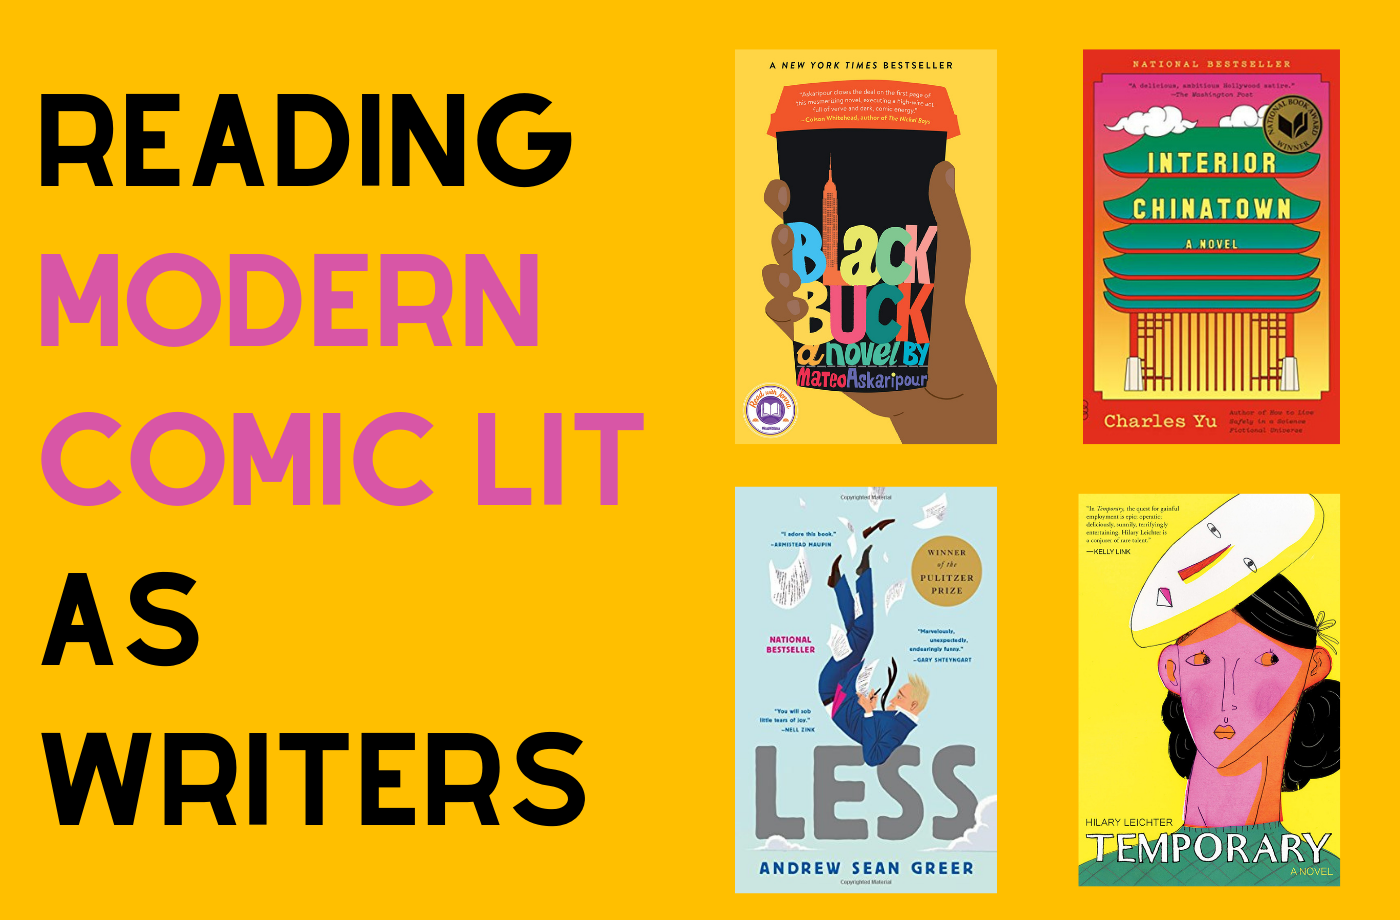 Catapult online classes: Caitlin Kunkel, 4 Weeks of Reading Modern Comic Lit as Writers Online, Fiction, Reading Group